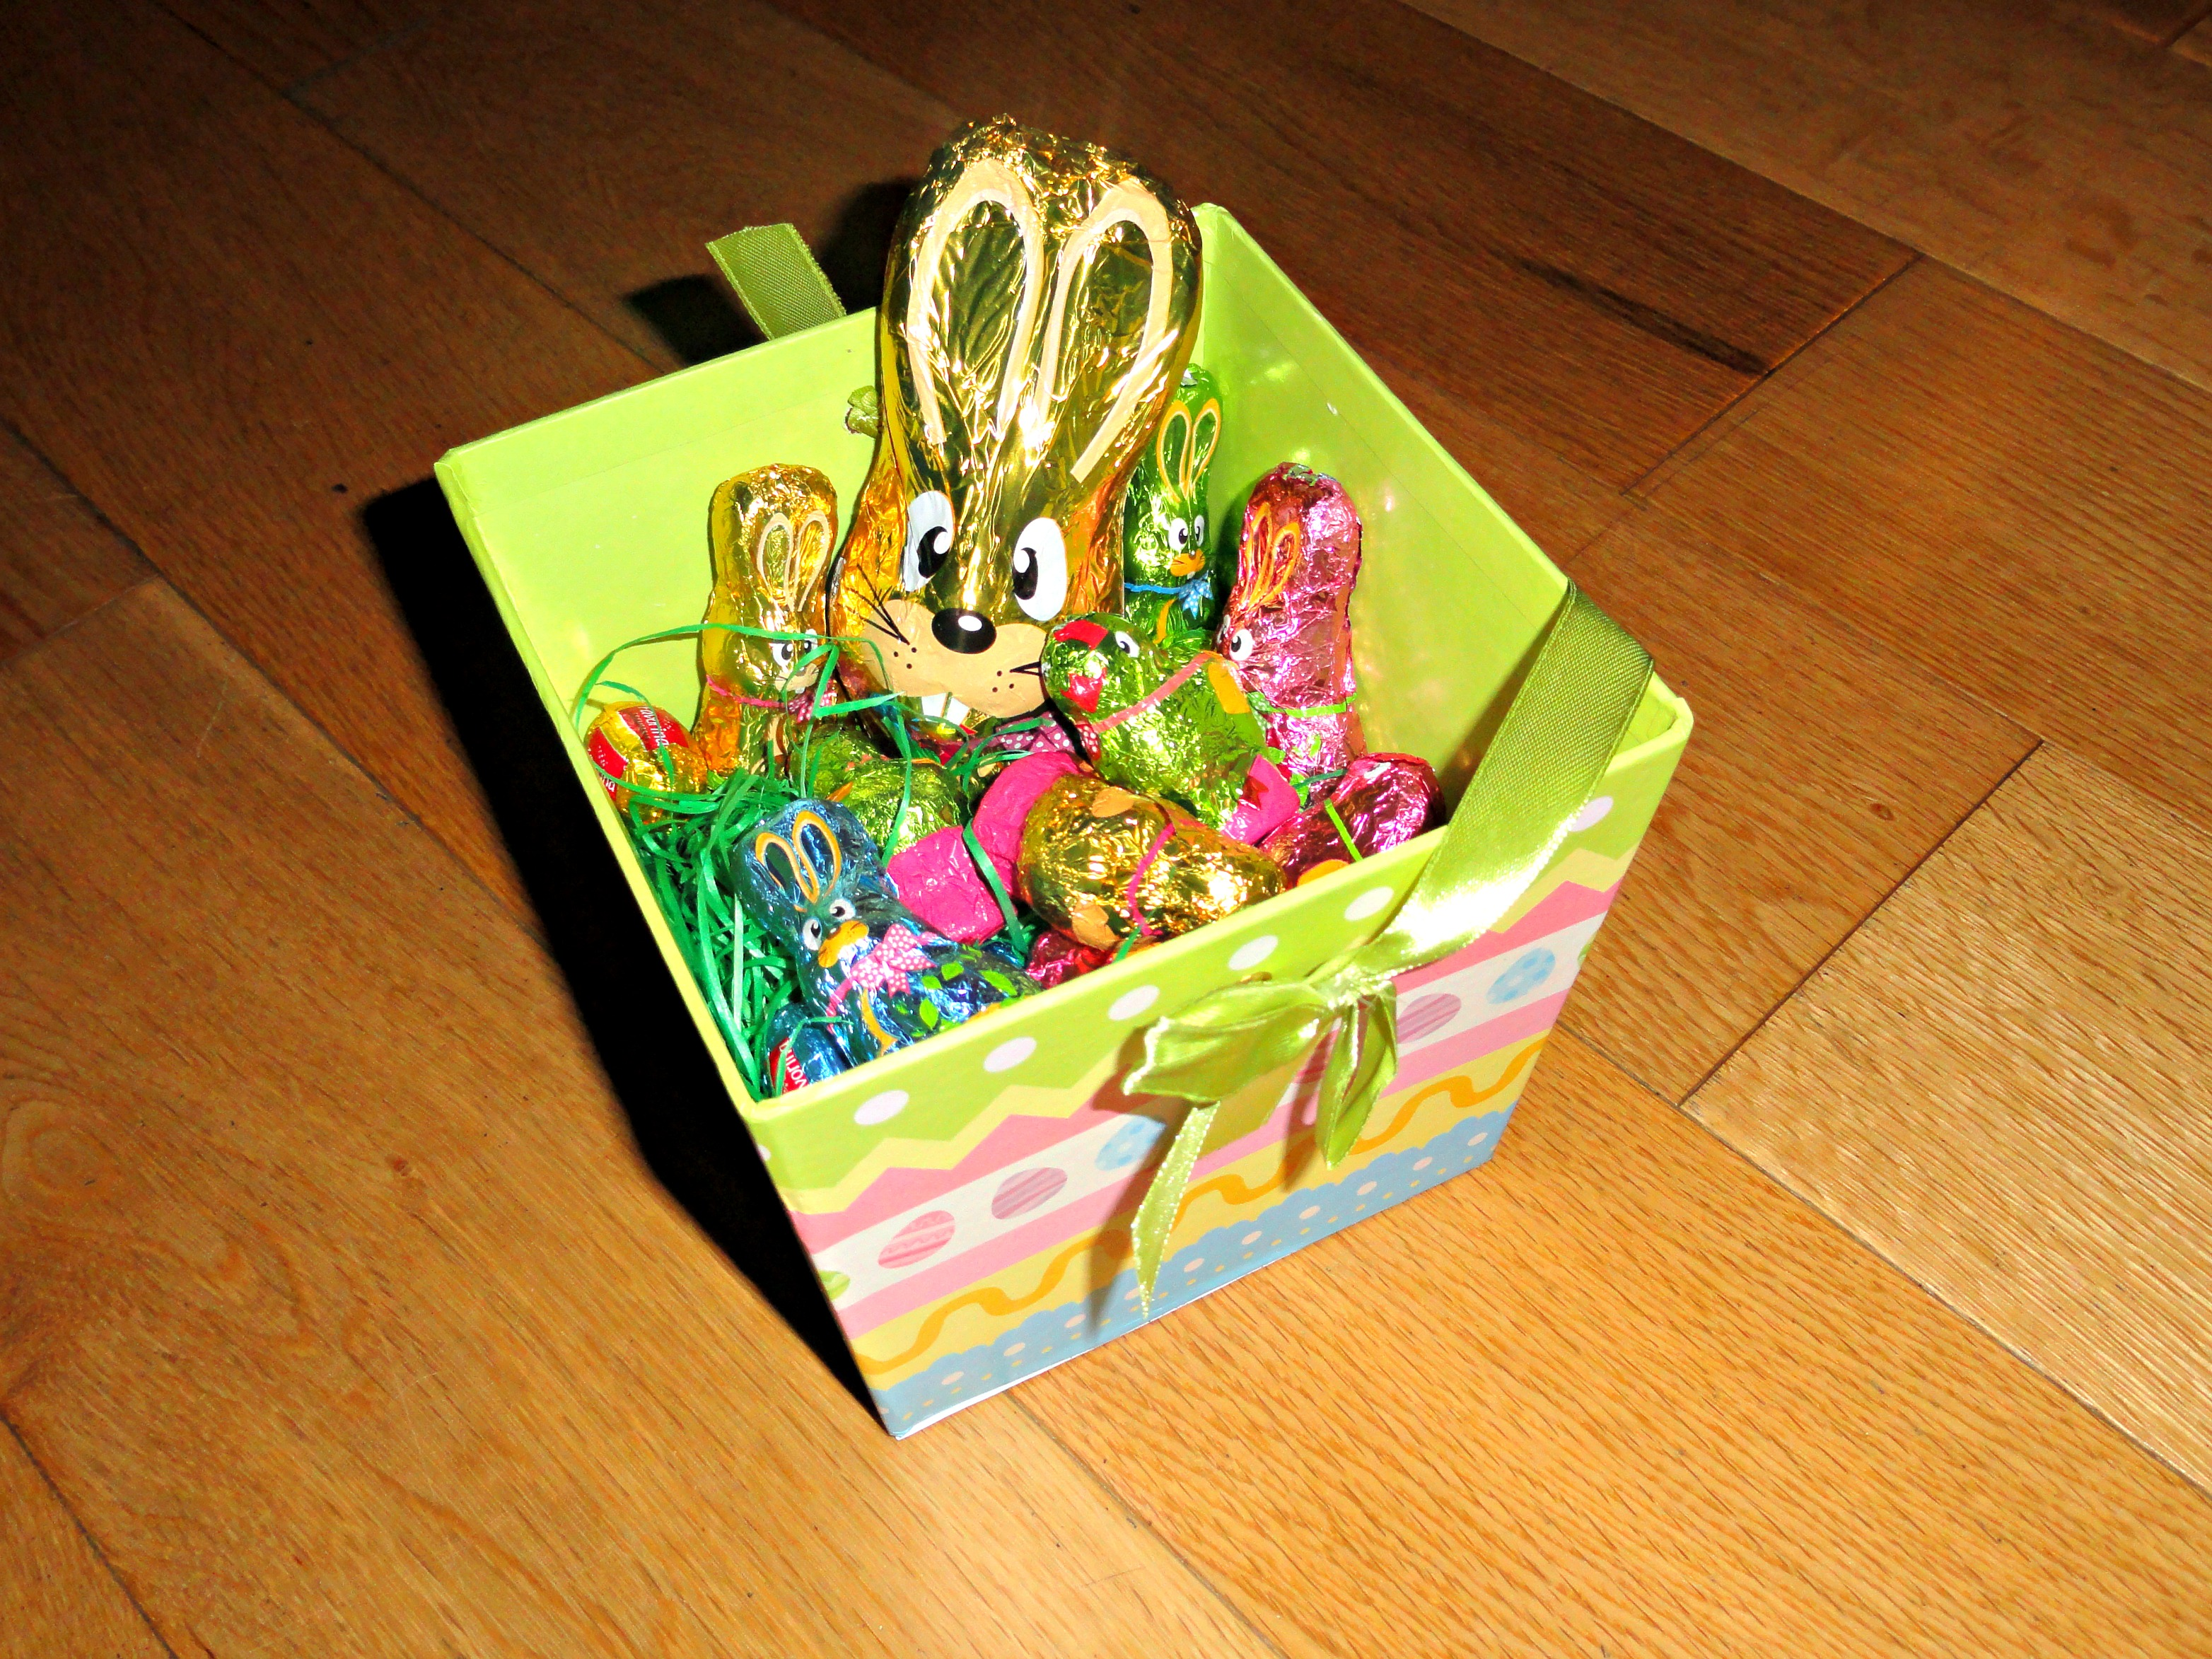 Easter gifts for matthew janines little world furthermore i got him 2 presents he can look for in the morning in the garden i hope the weather is at least a bit decent to do this easter egg hunt negle Choice Image